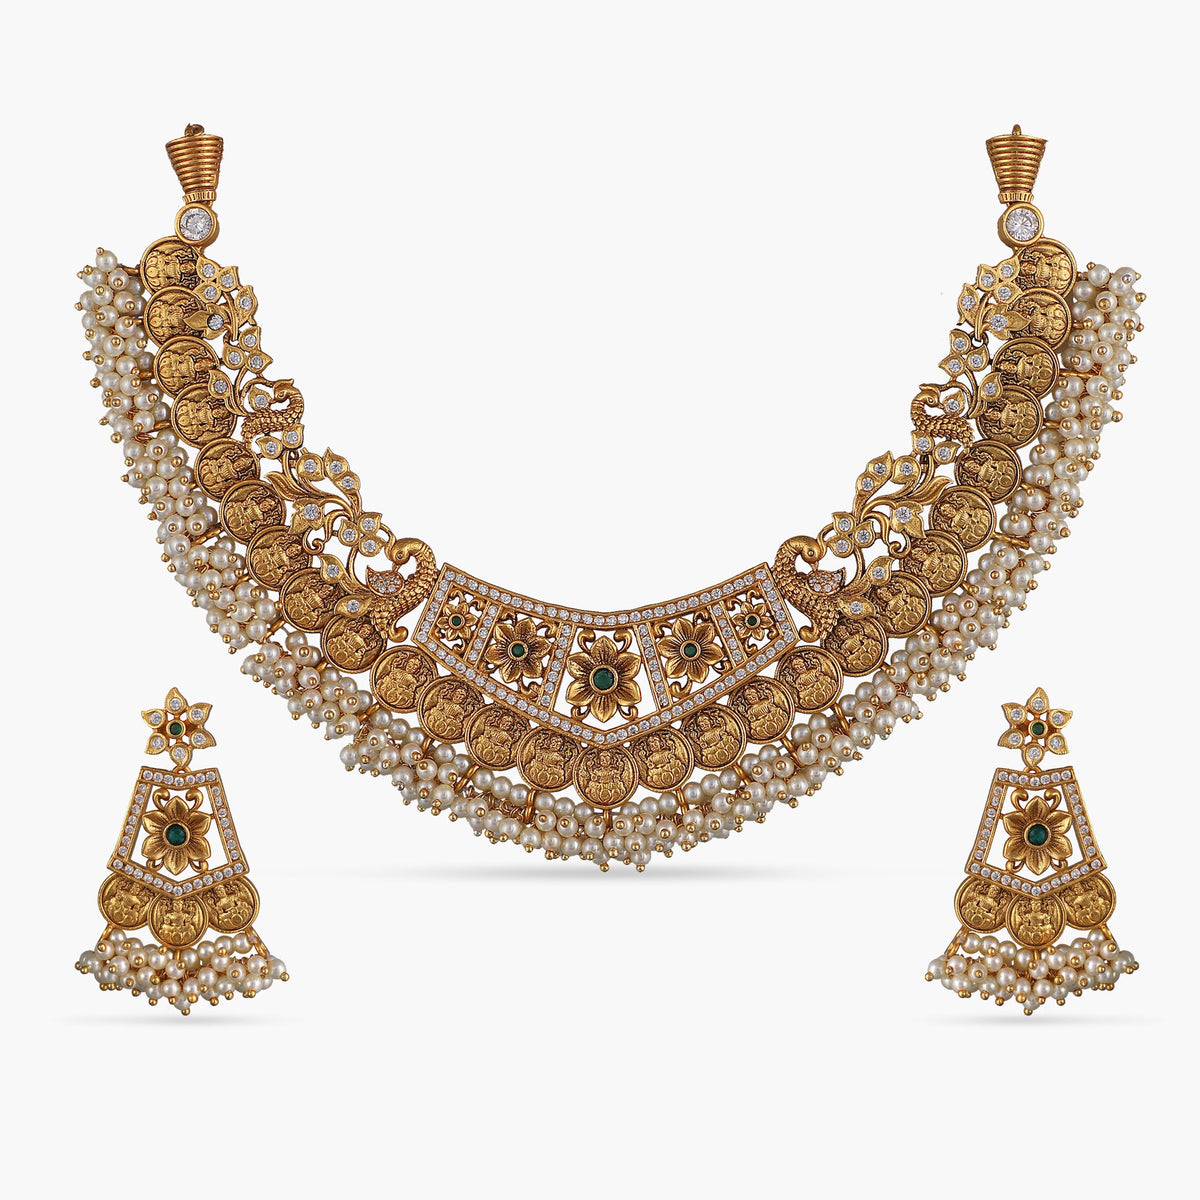 Nili Antique Necklace Set